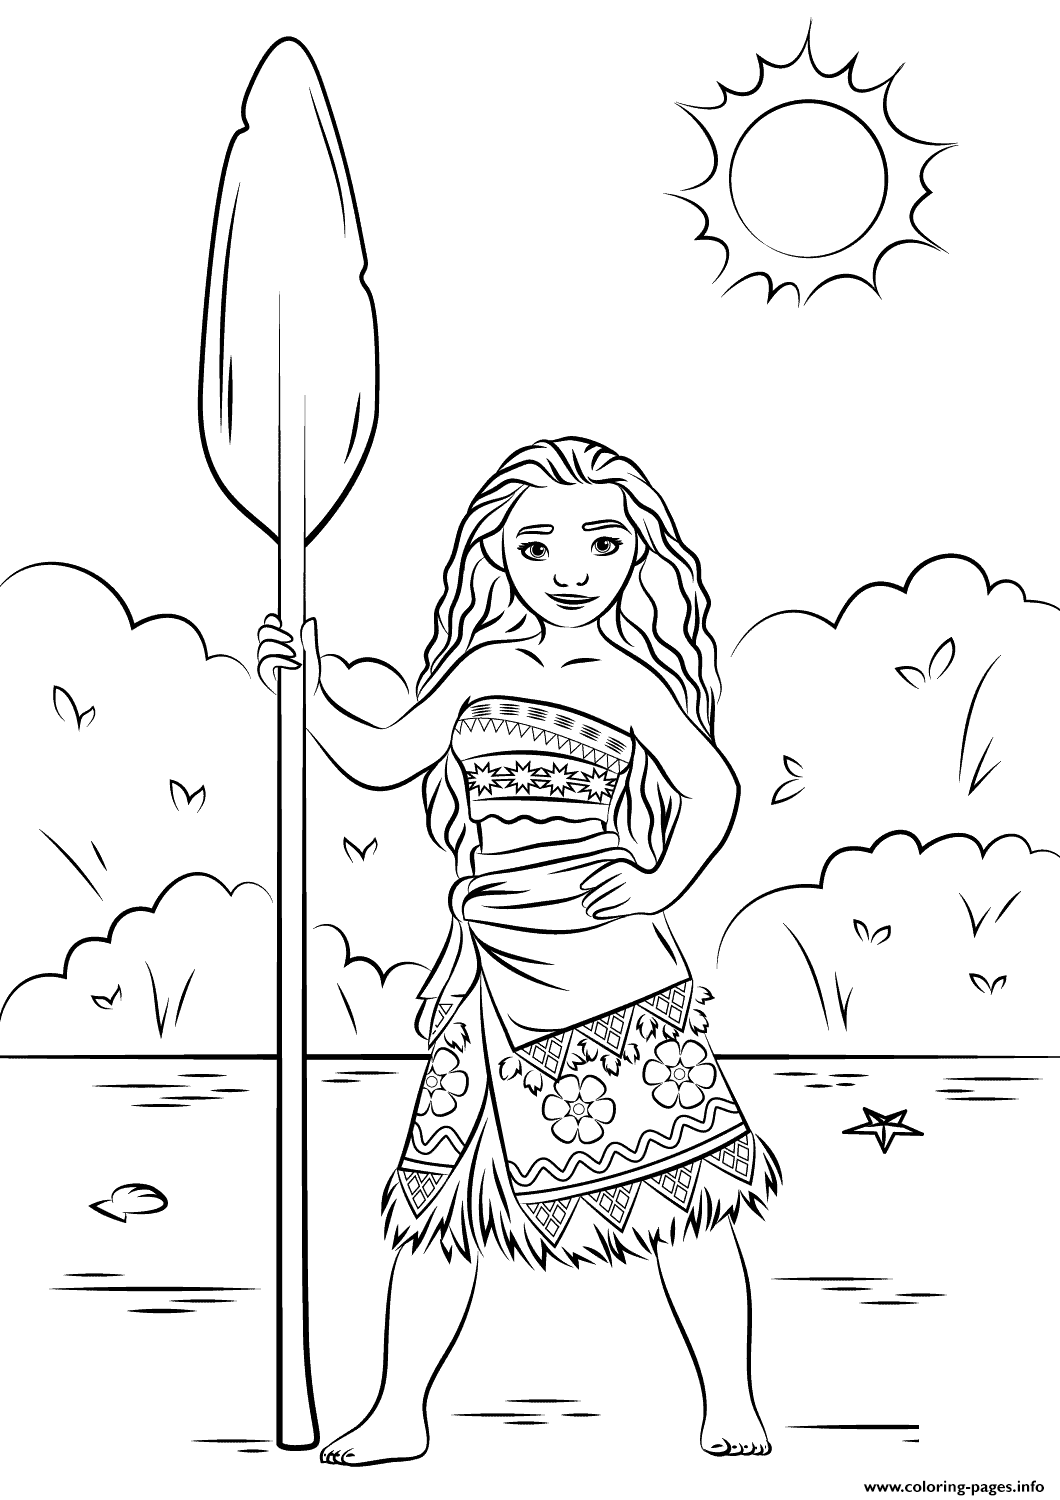 Print princess moana disney coloring pages | Pretty Papers, Paper ...